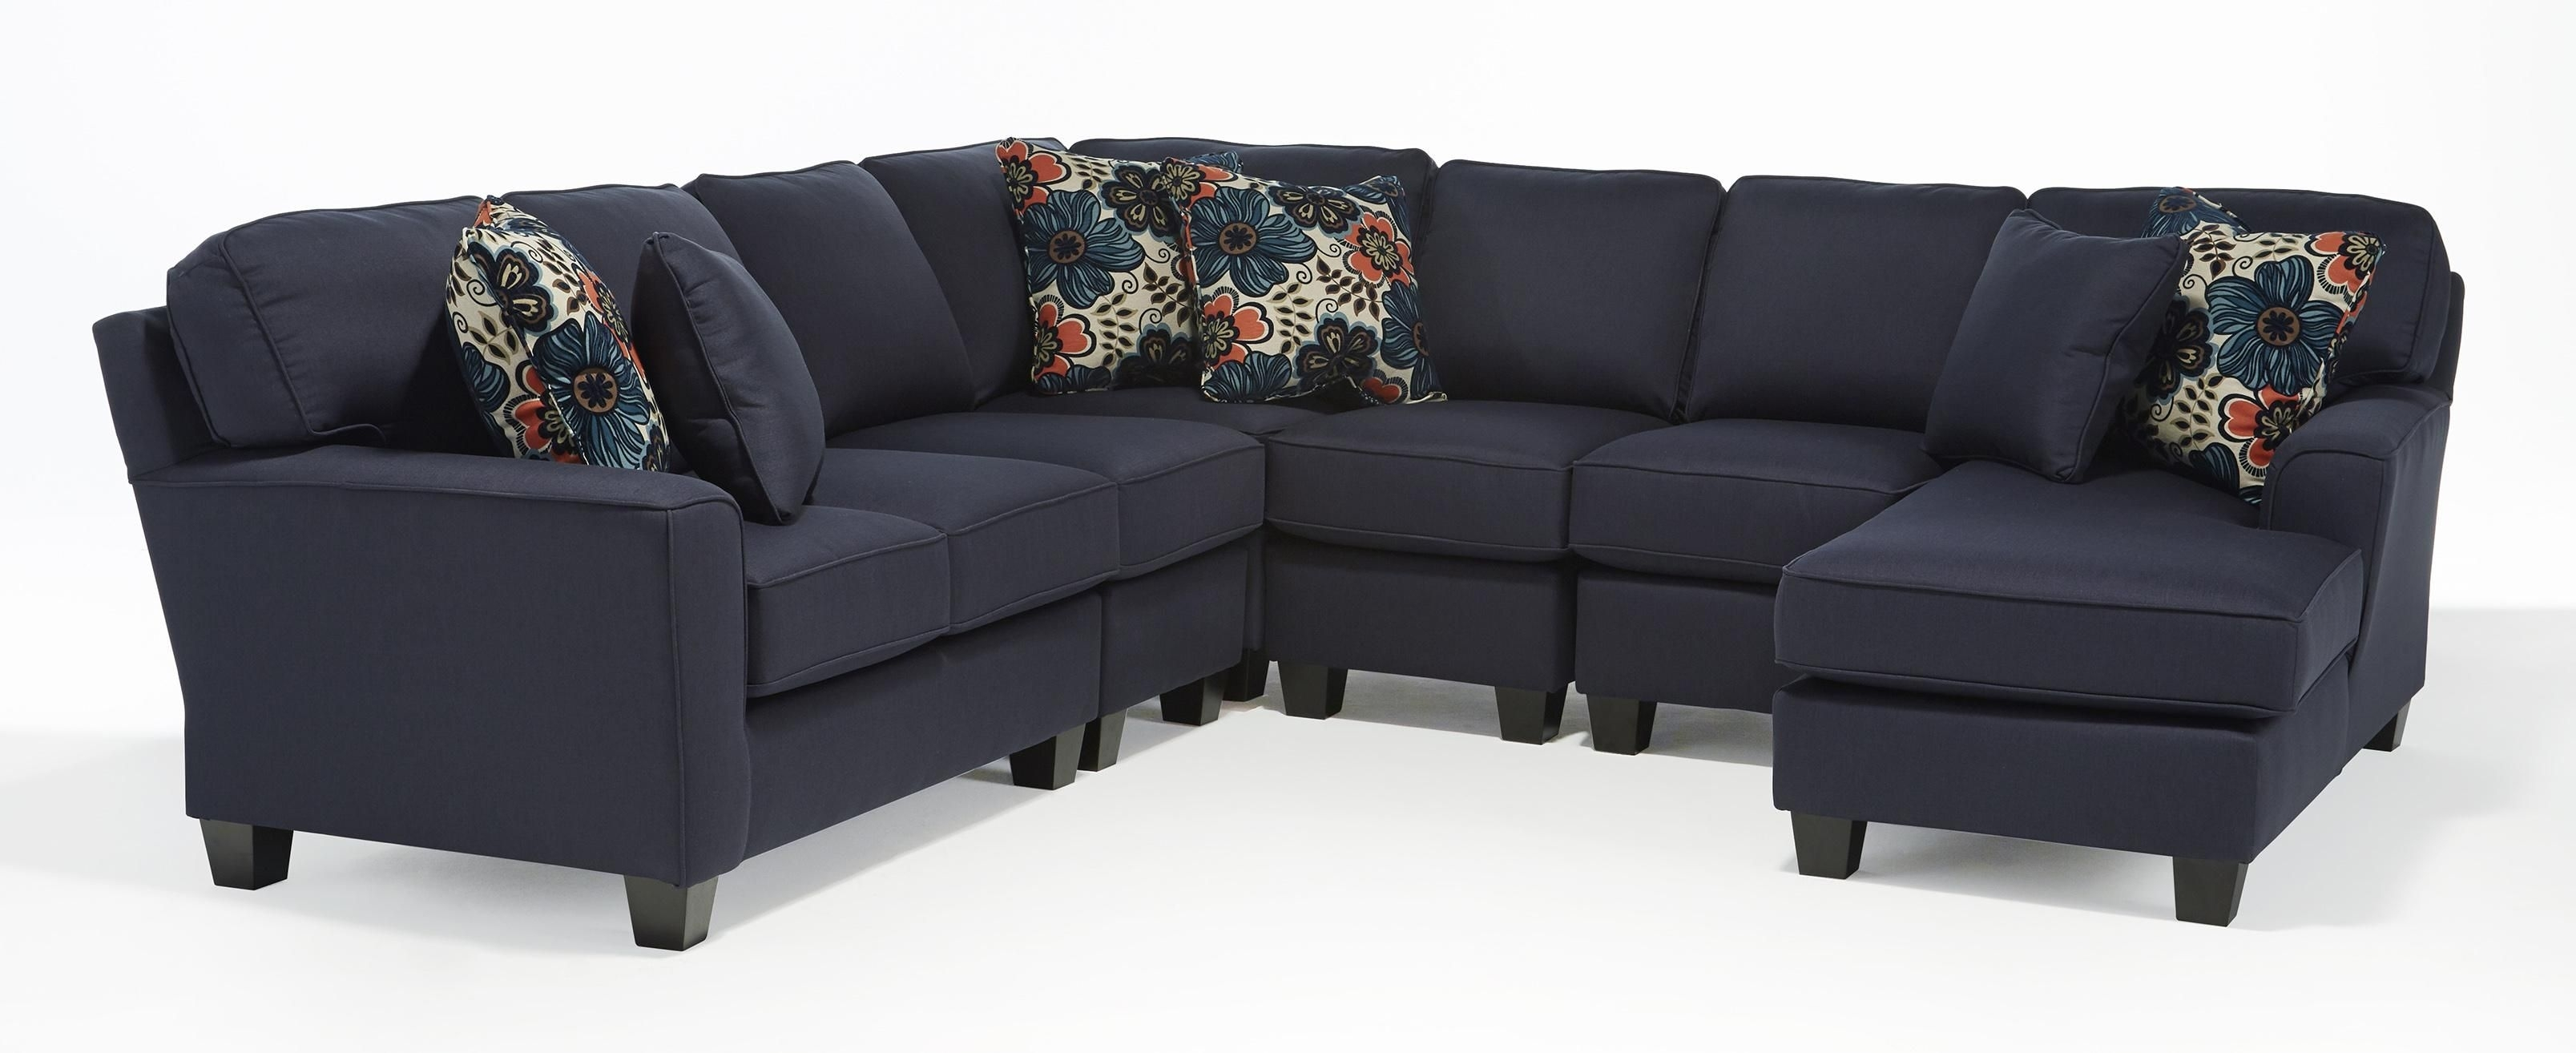 Best Home Furnishings Annabel Five Piece Customizable Sectional Sofa pertaining to Customizable Sectional Sofas (Image 1 of 15)